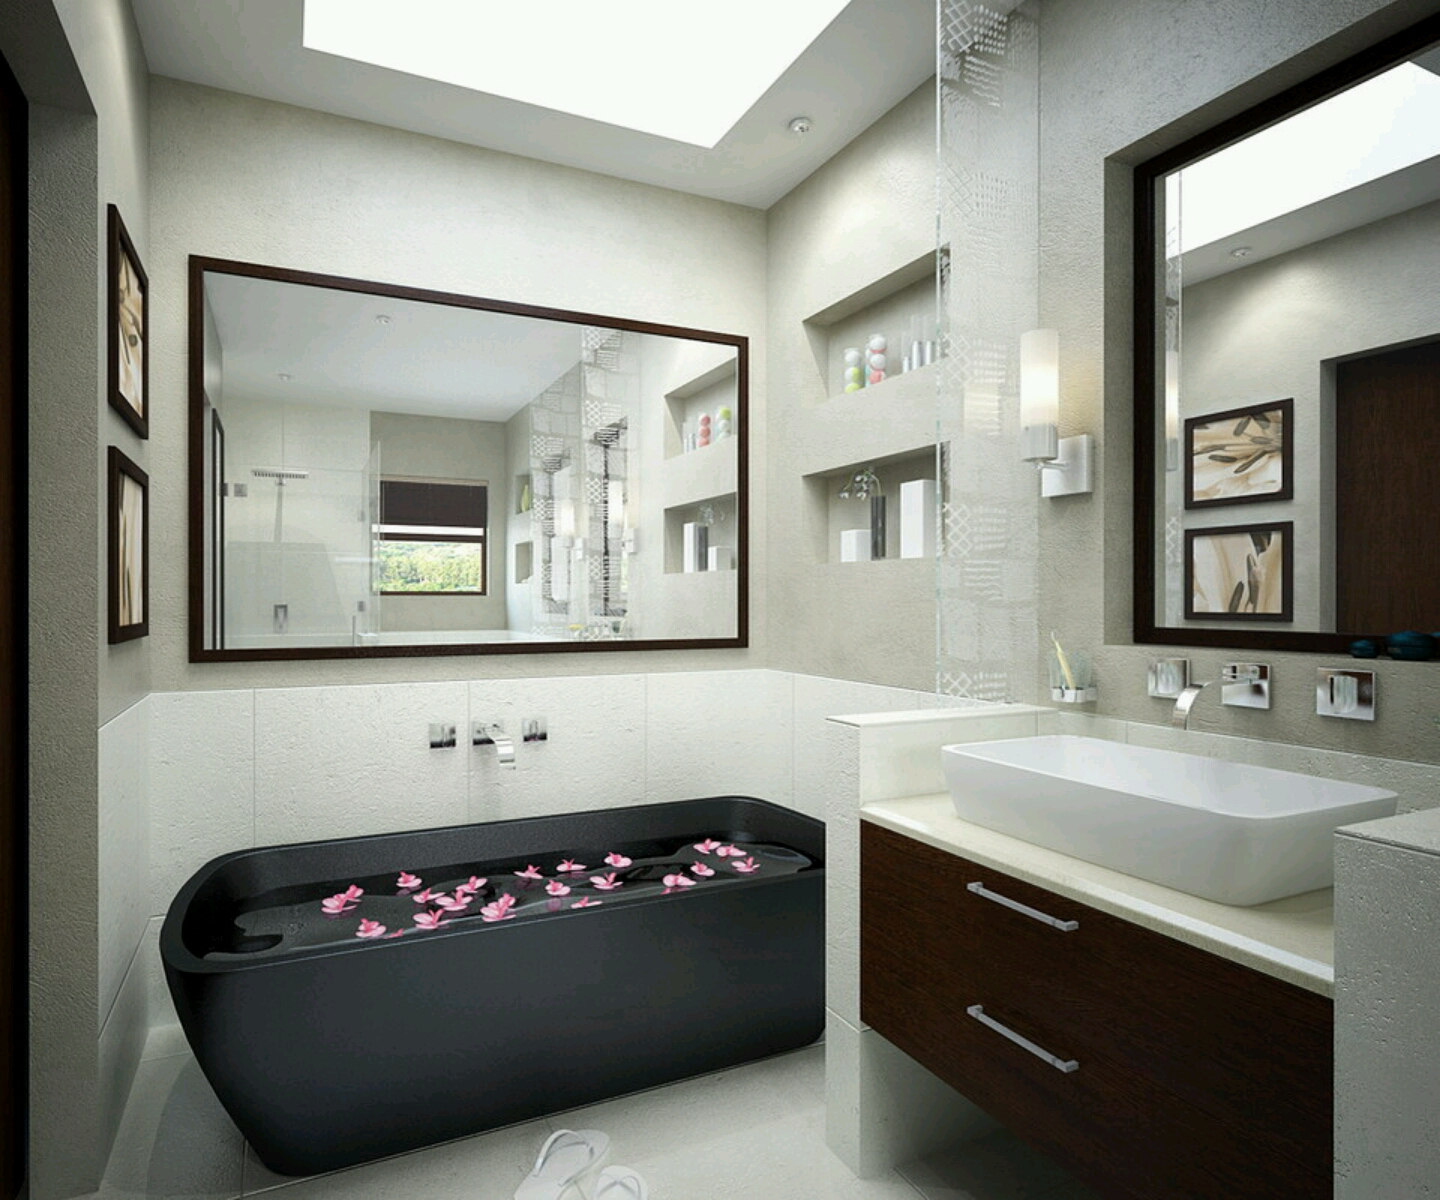 Modern bathrooms cabinets designs furniture gallery for Modern bathroom ideas